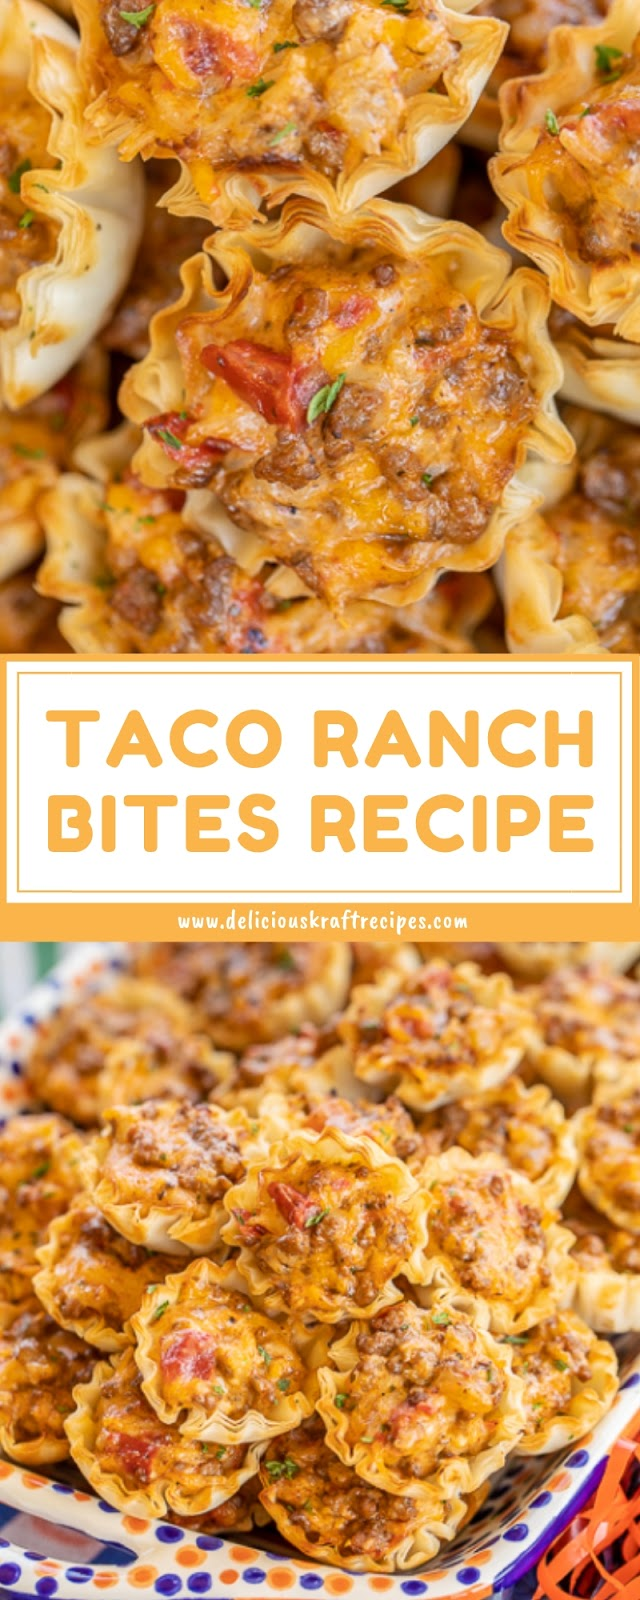 TACO RANCH BITES RECIPE